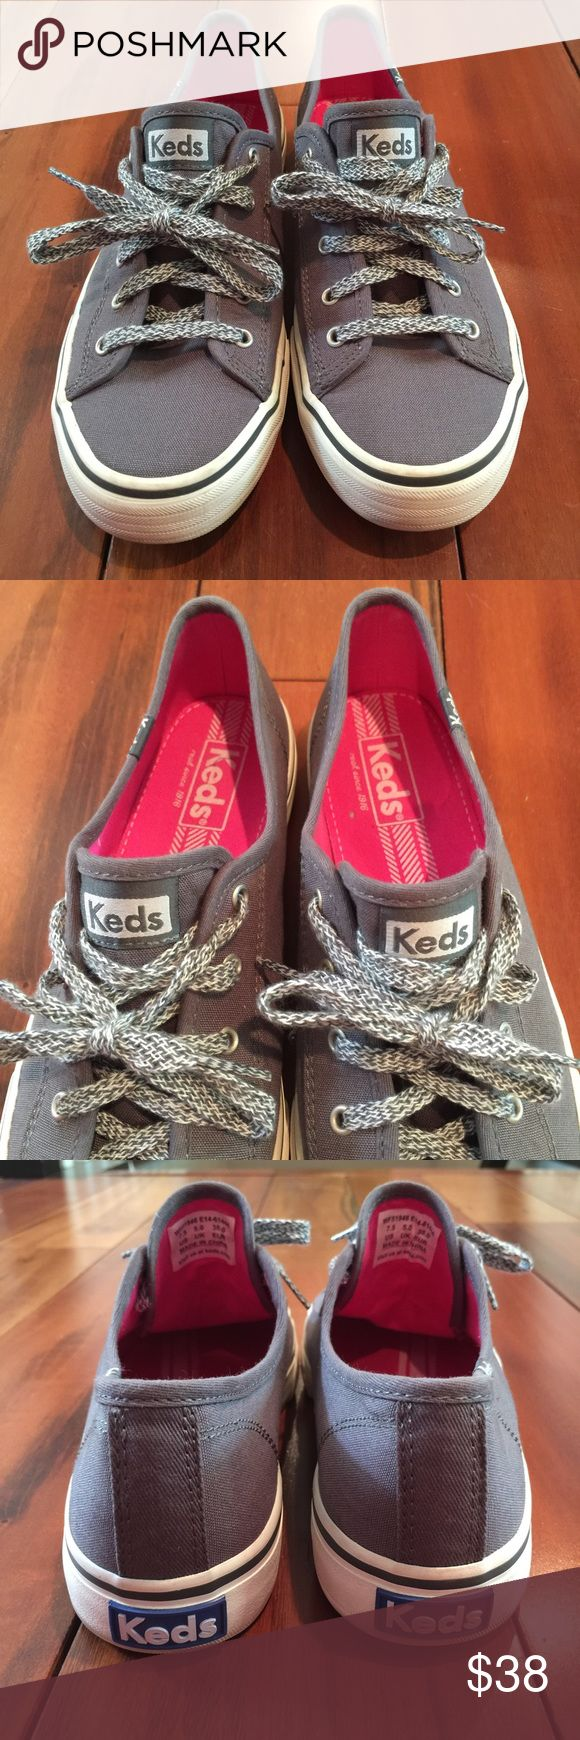 Keds Sneakers NWOT Never worn Keds Shoes Sneakers